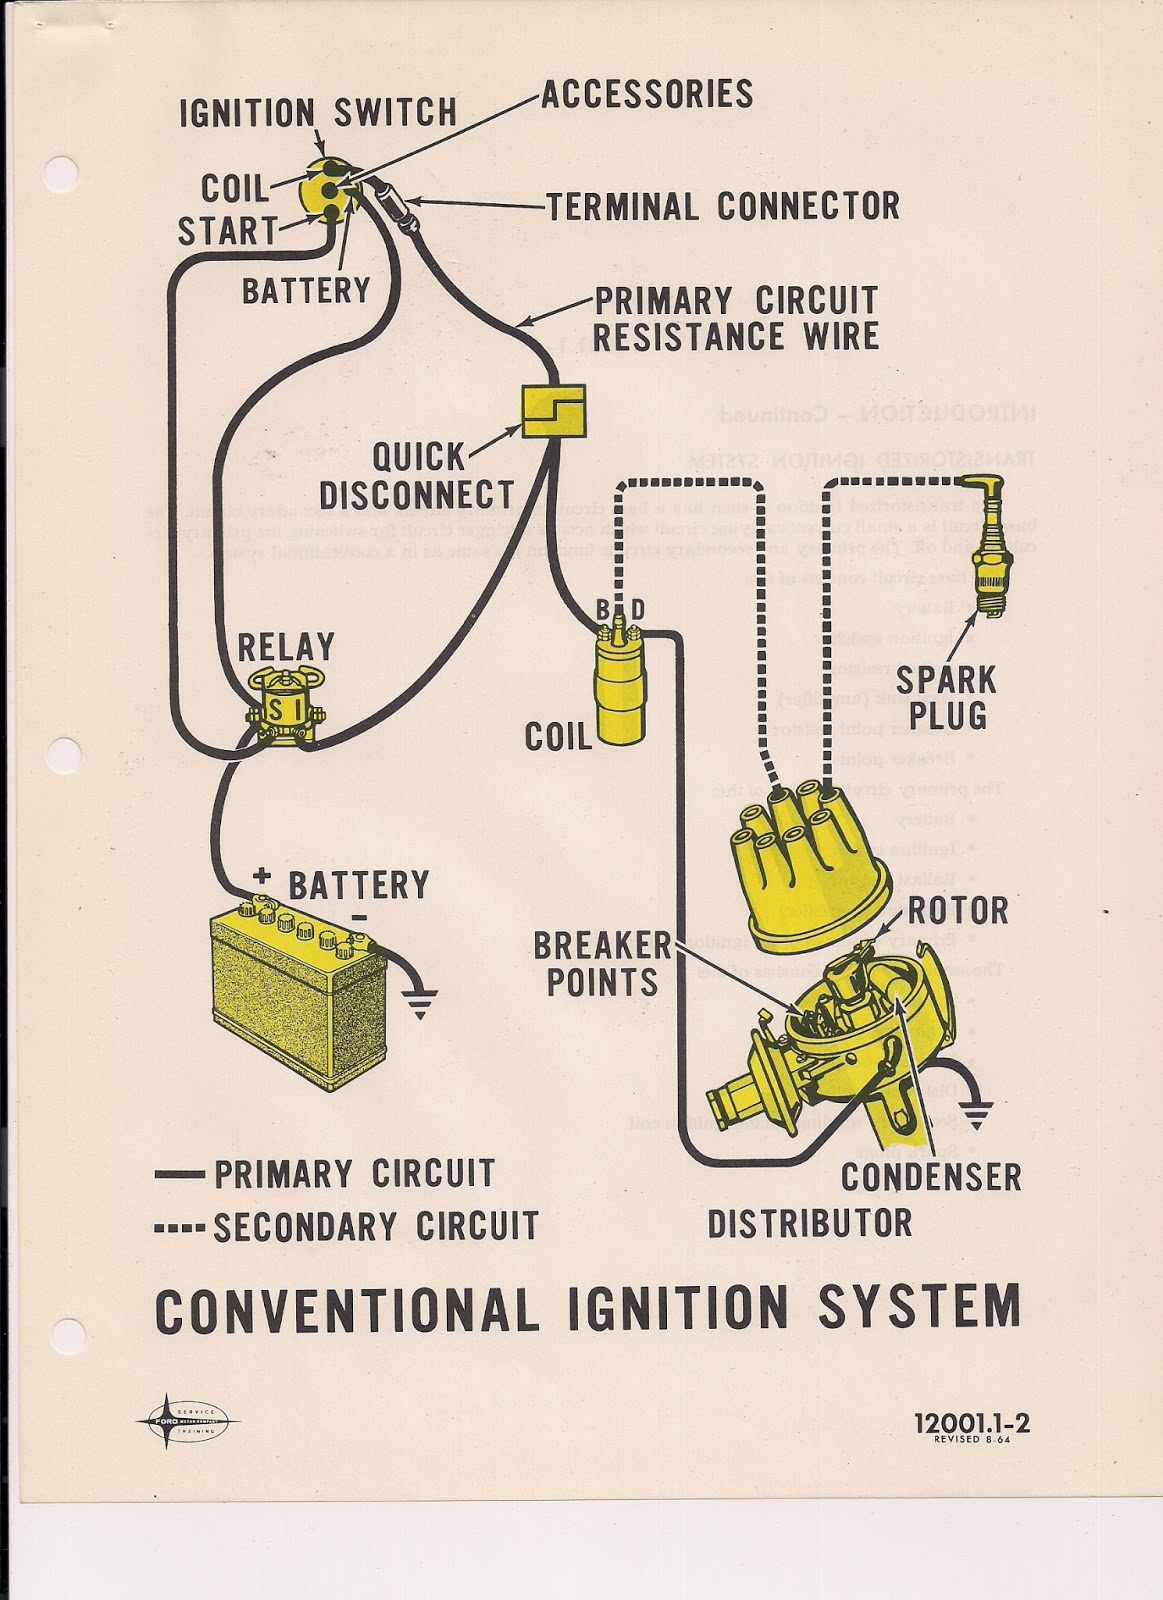 63 Falcon Wiring Diagram Example Electrical Electric Blanket 1967 Mustang Coil 1957 Ford For Sunbeam 1963